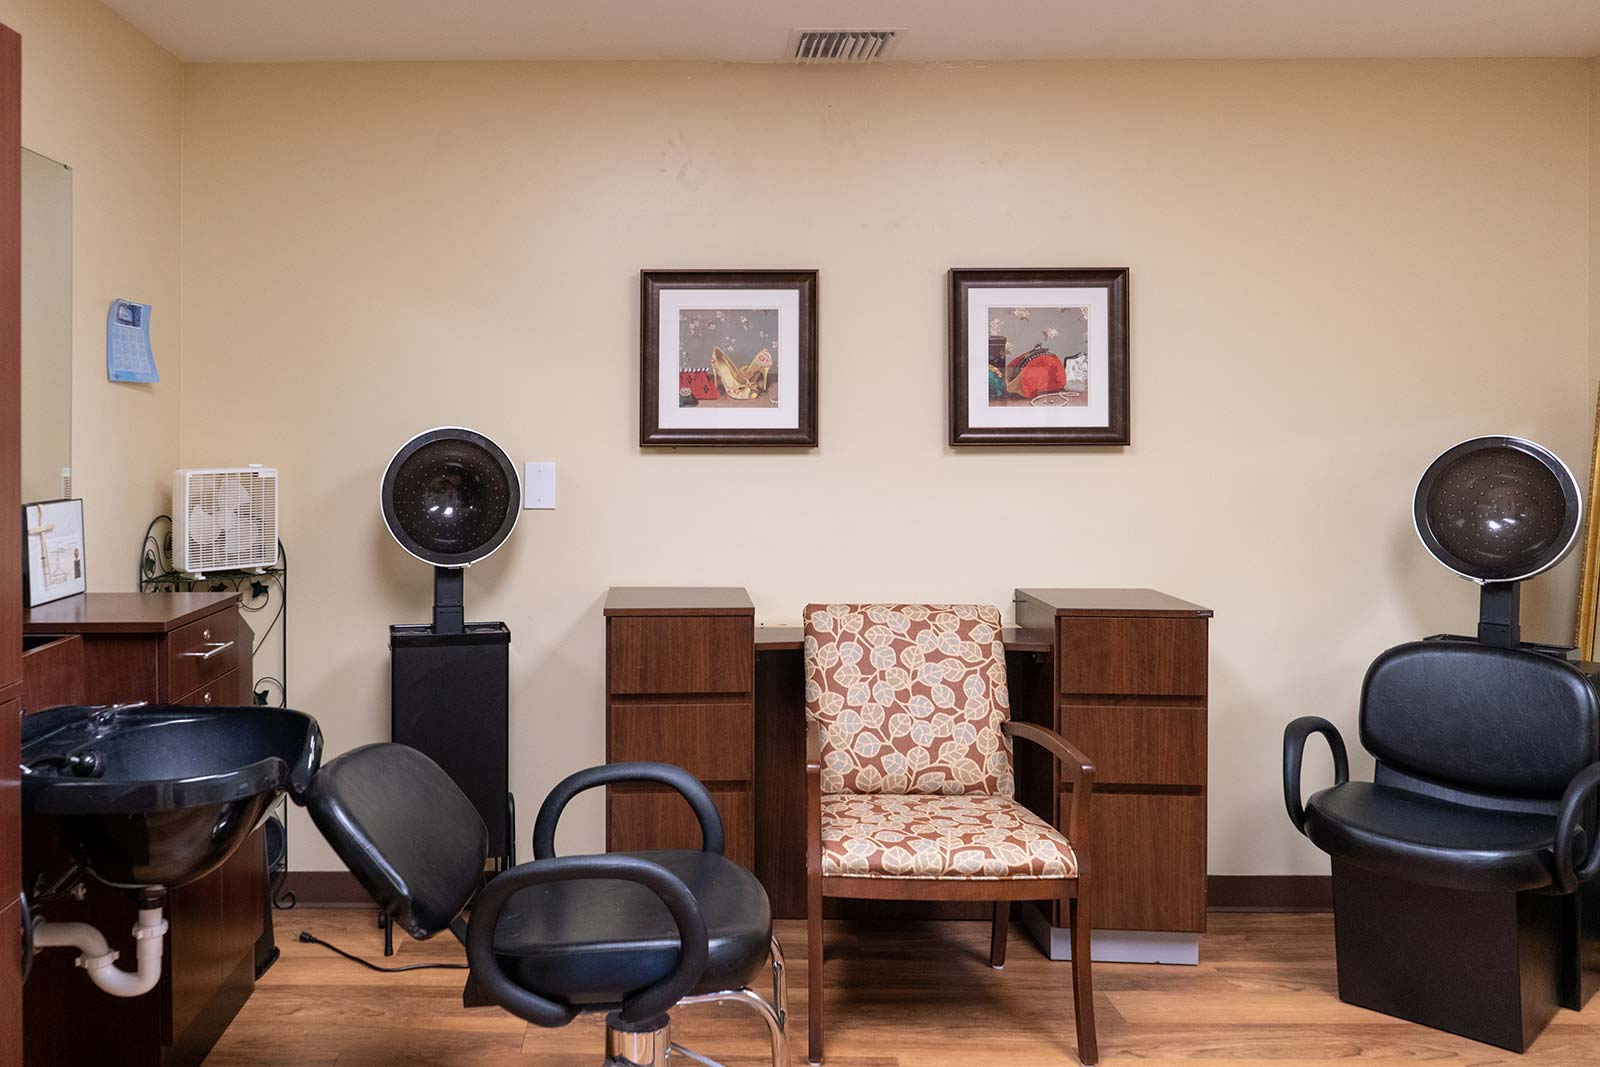 Beauty salon and barber shop at The Colonnade at Northdale assisted living and memory care community in Tampa, FL